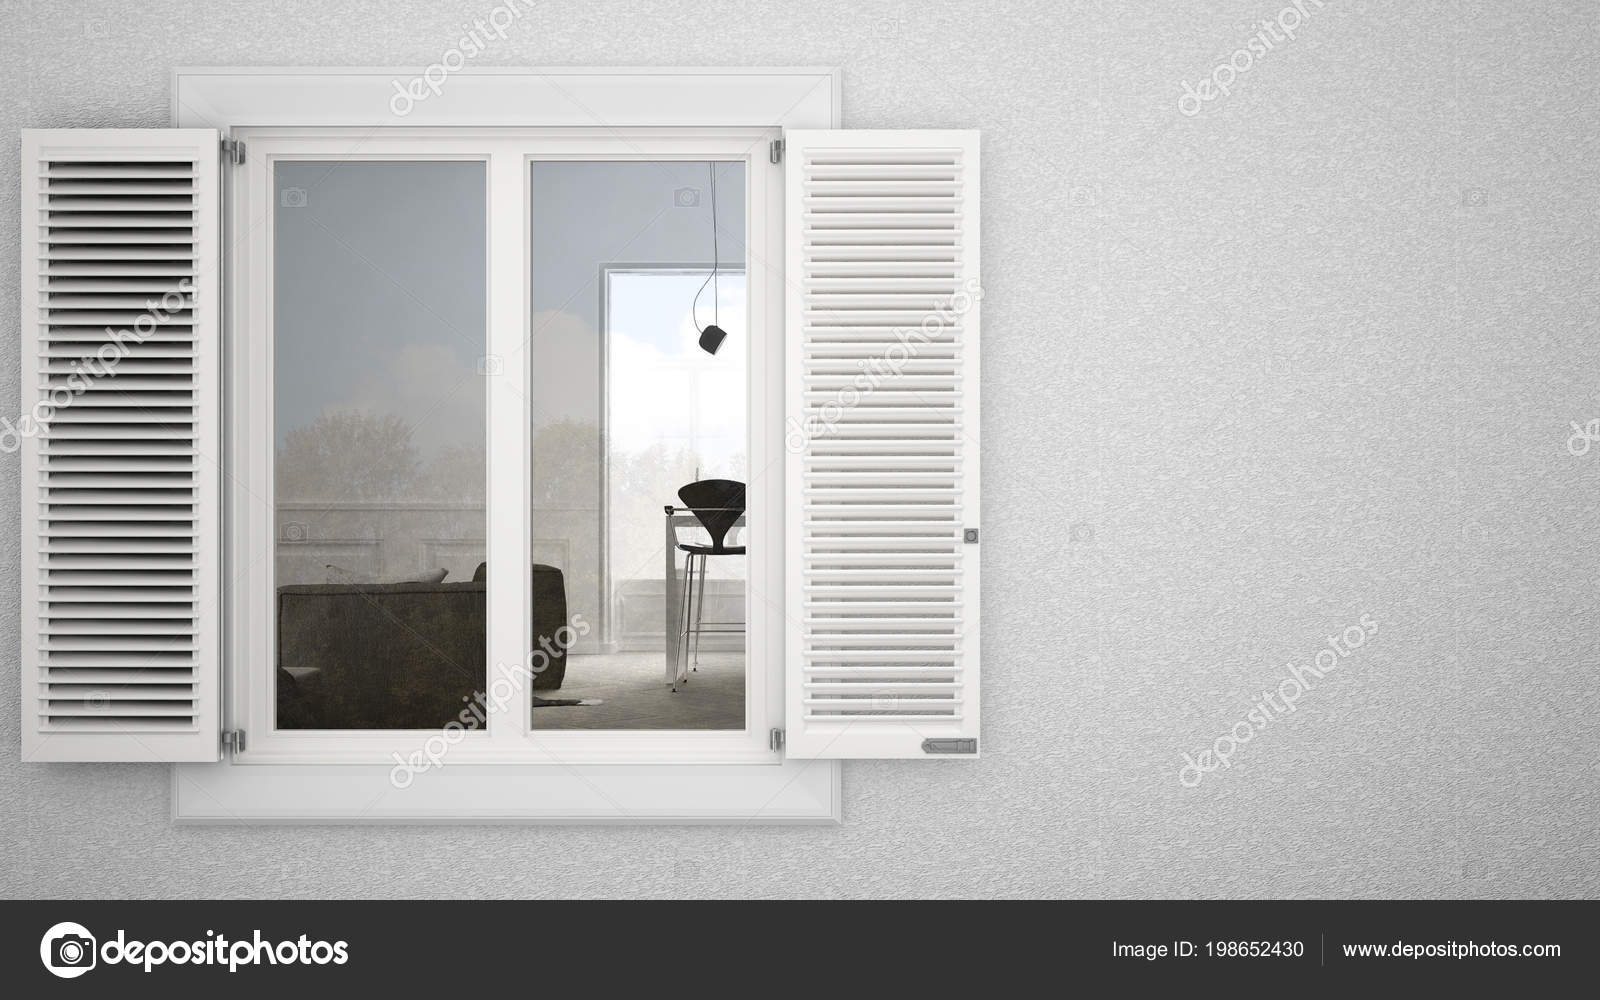 Exterior Plaster Wall White Window Shutters Showing Interior